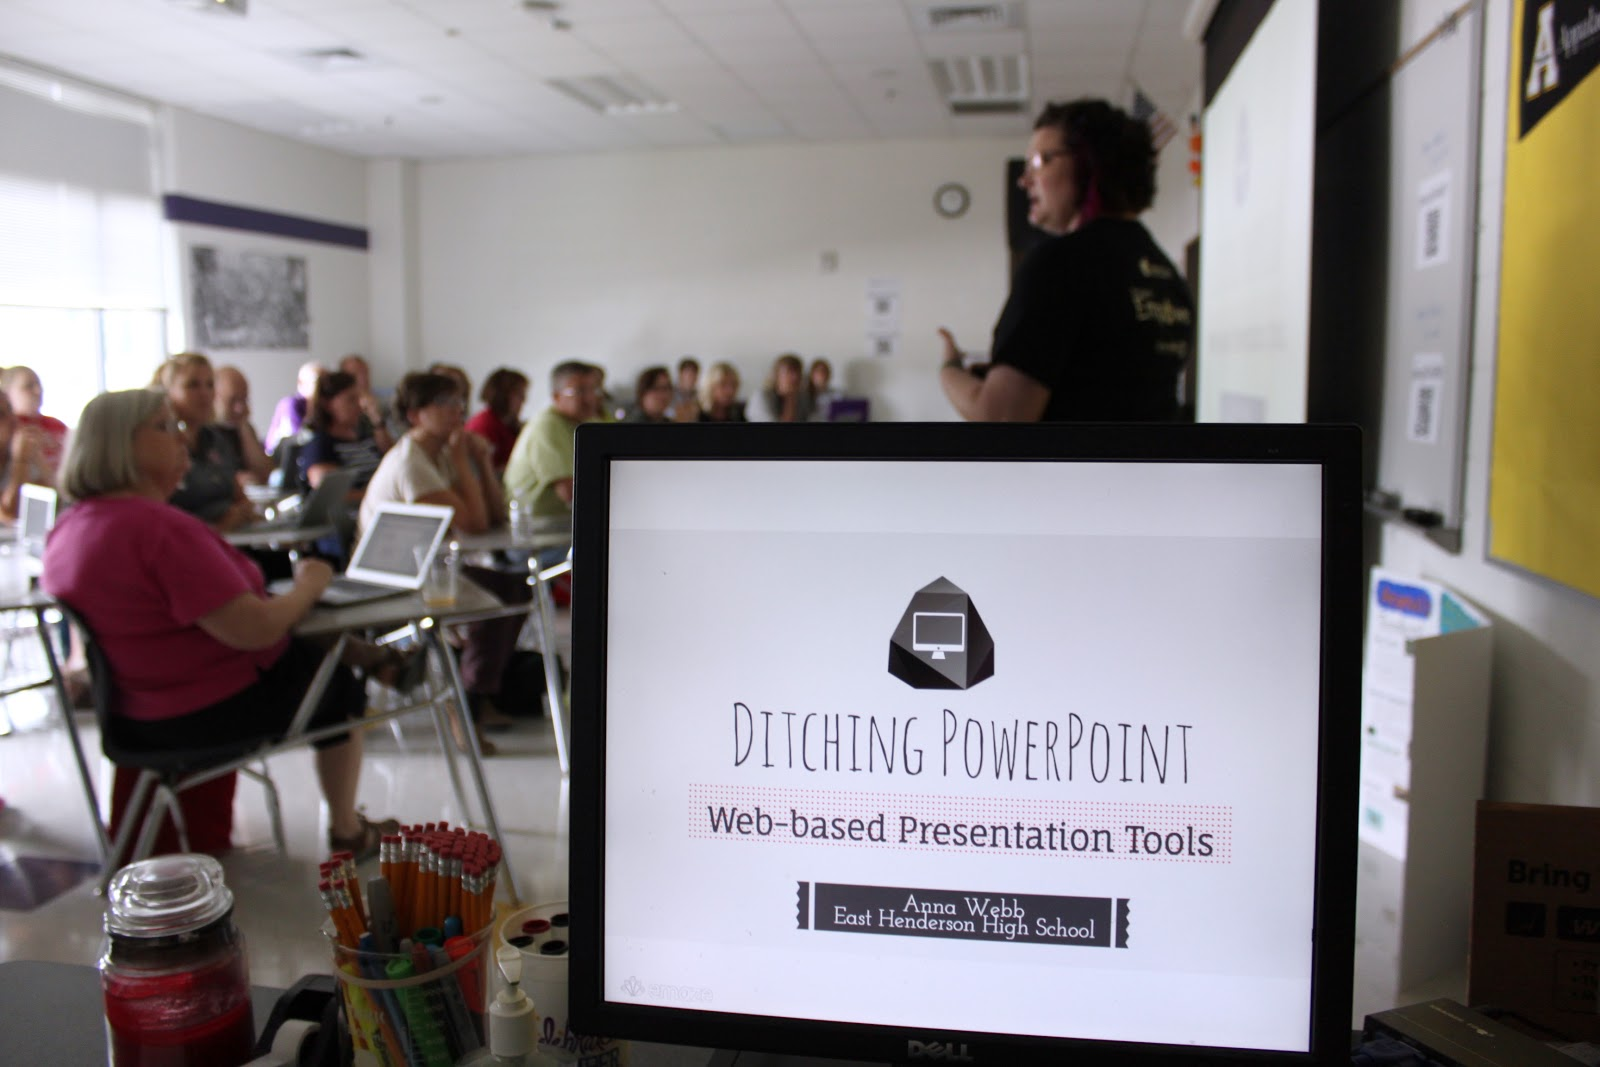 Teacher presenting ideas to teachers for ditching PowerPoint